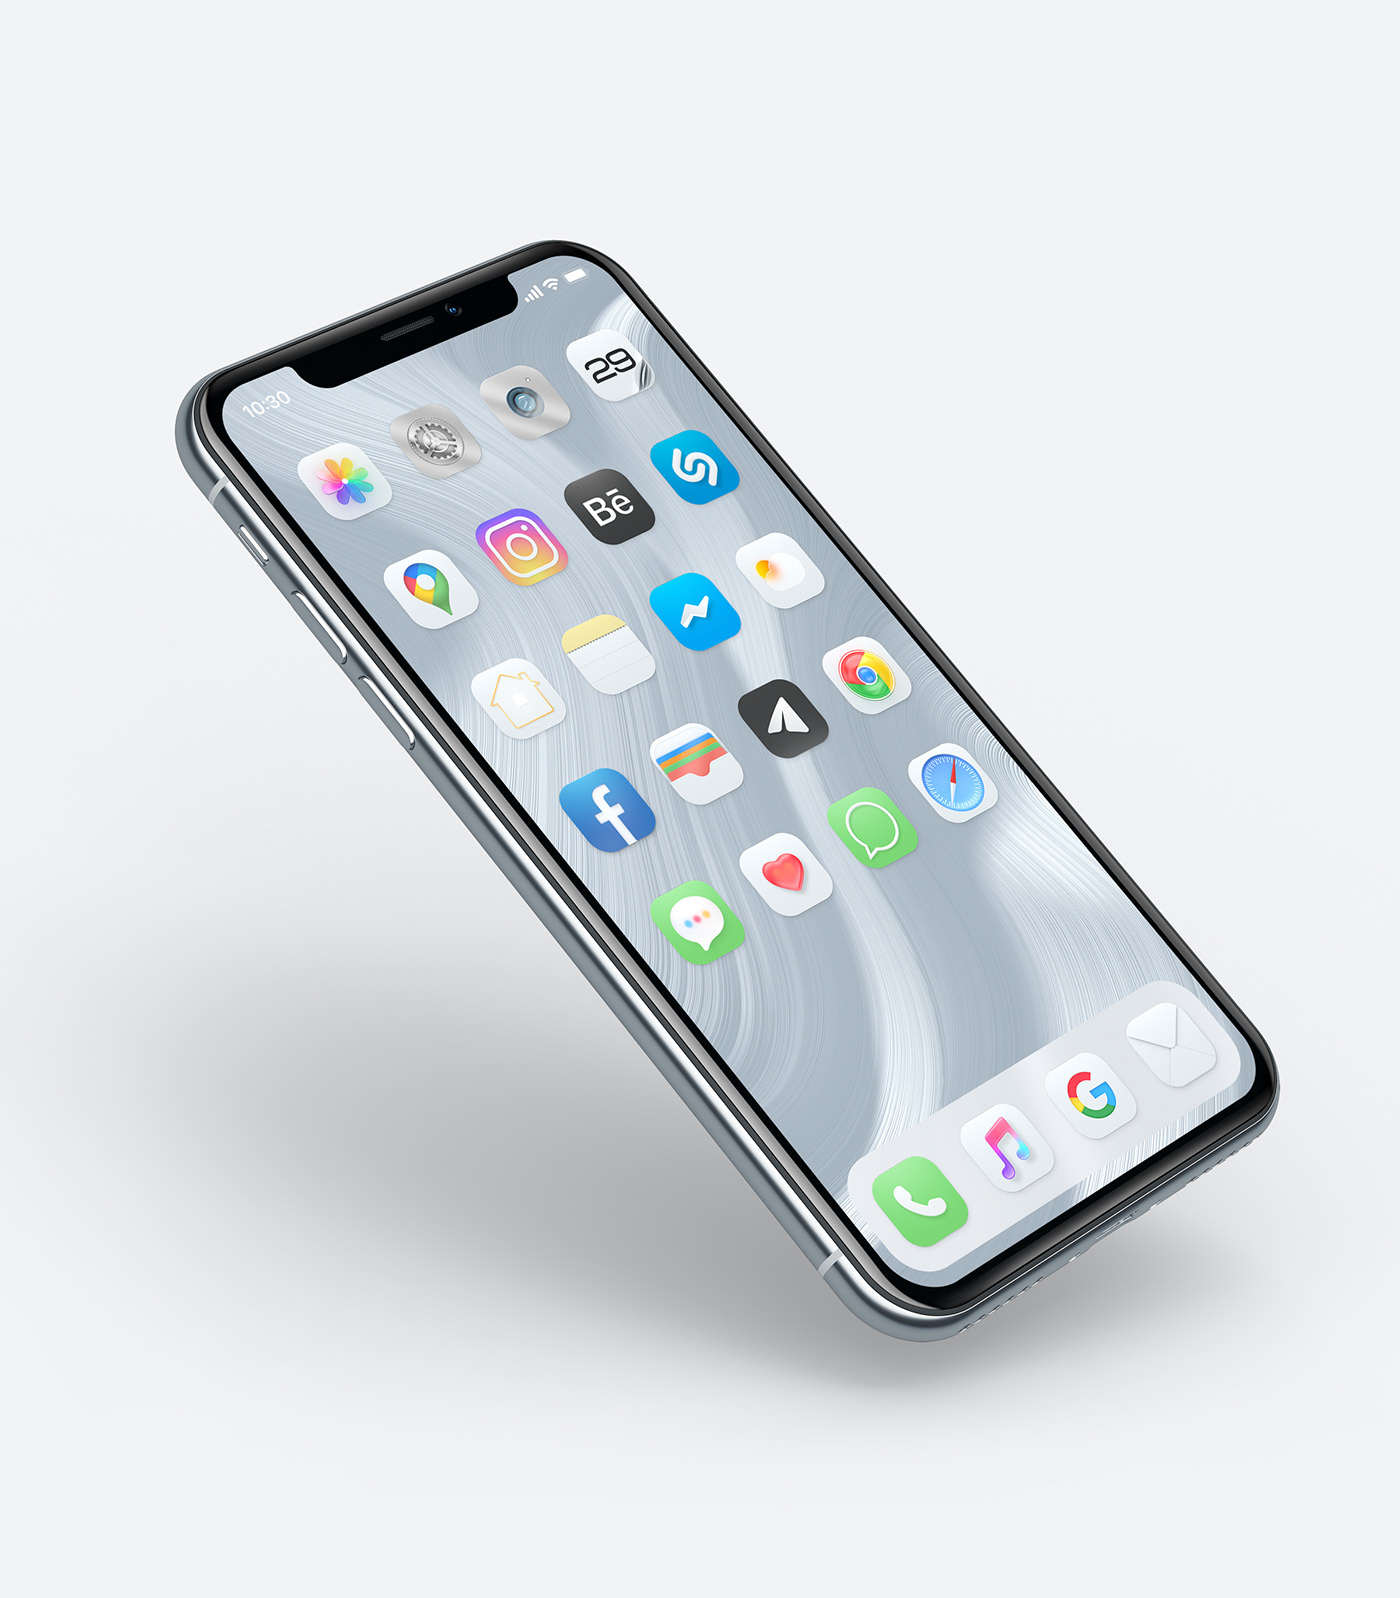 iPhone Mockup Classic Stateramorphism